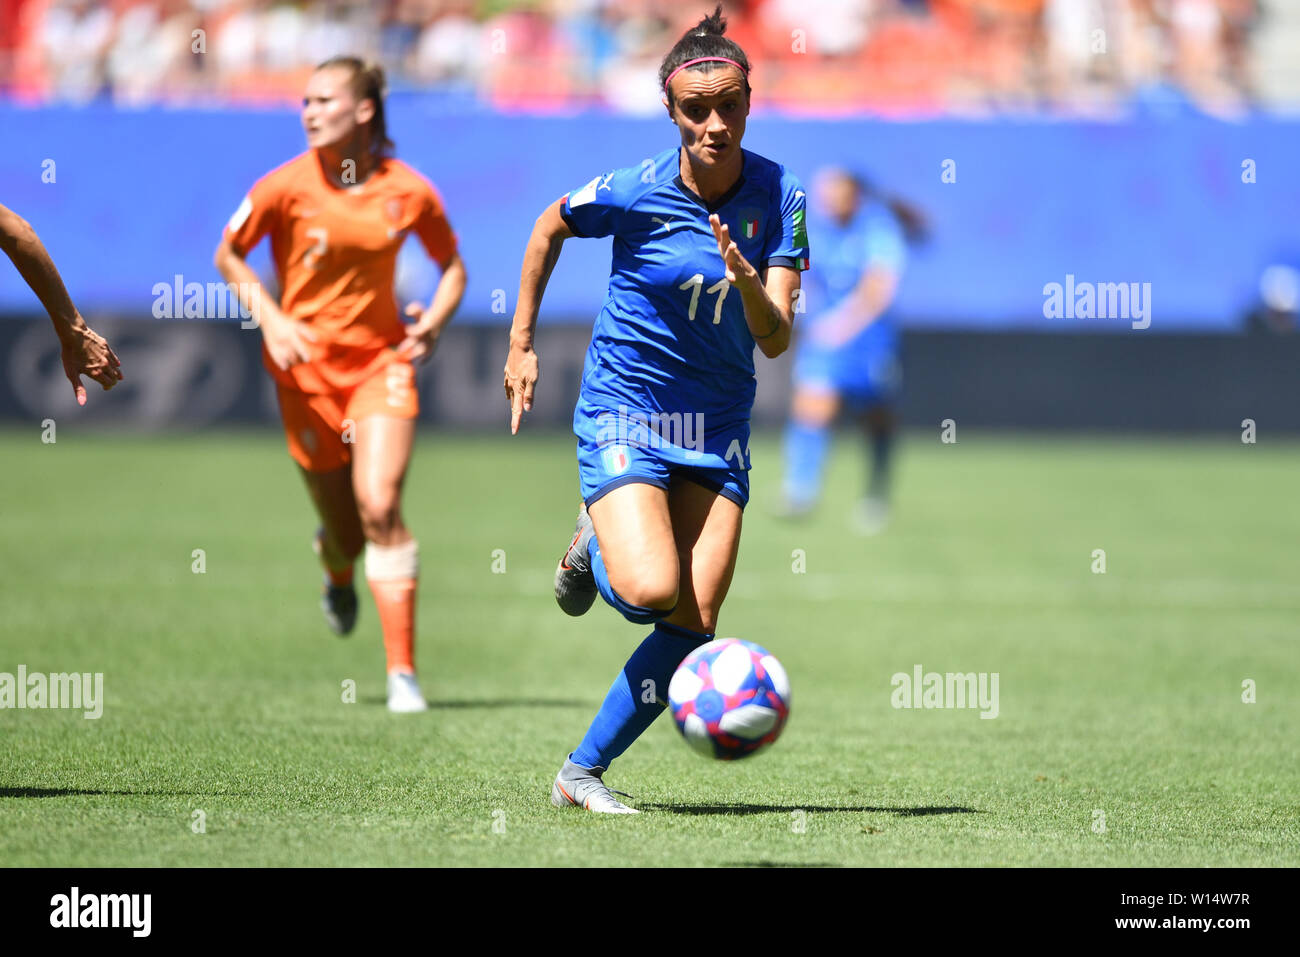 Barbara Bonansea (Italy) (11) with Ball in the run-up, 29.06.2019, Valenciennes (France), Football, FIFA Women's World Cup 2019, Quarter-finals Italy - Netherlands, FIFA REGULATIONS PROHIBIT ANY USE OF PHOTOGRAPH AS IMAGE SEQUENCES AND / OR QUASI VIDEO. | usage worldwide Stock Photo